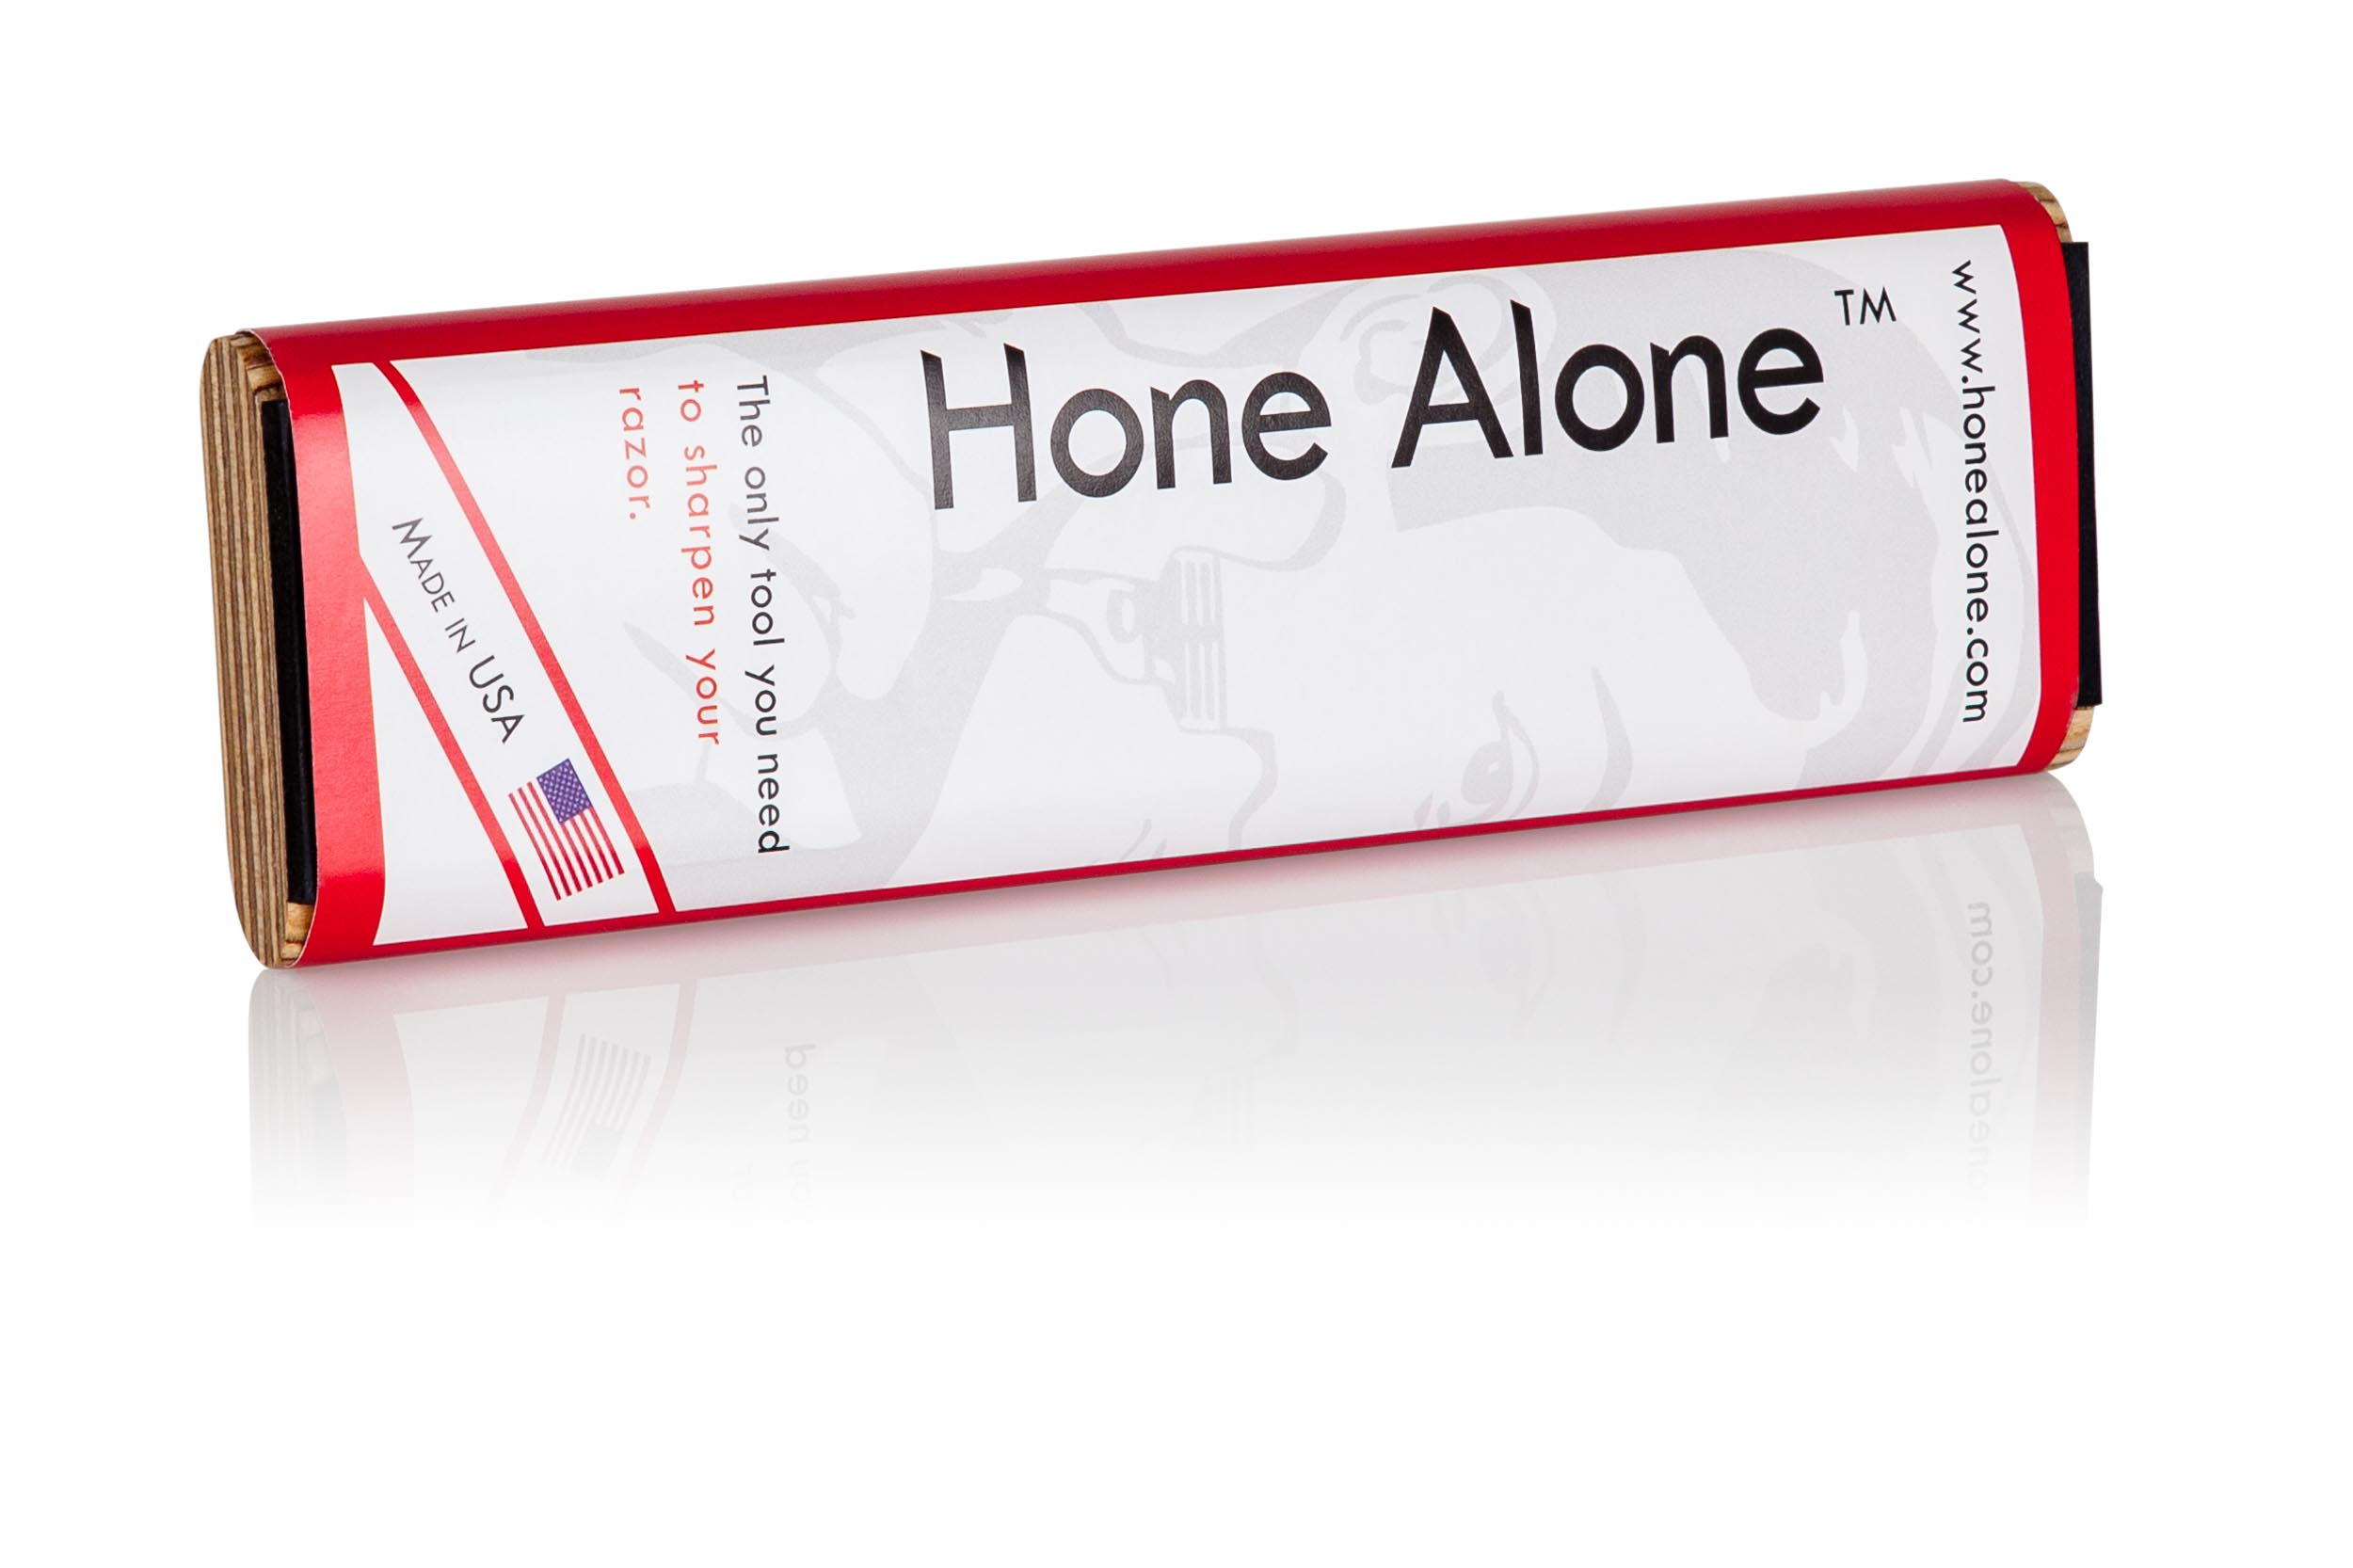 Client: Hone Alone